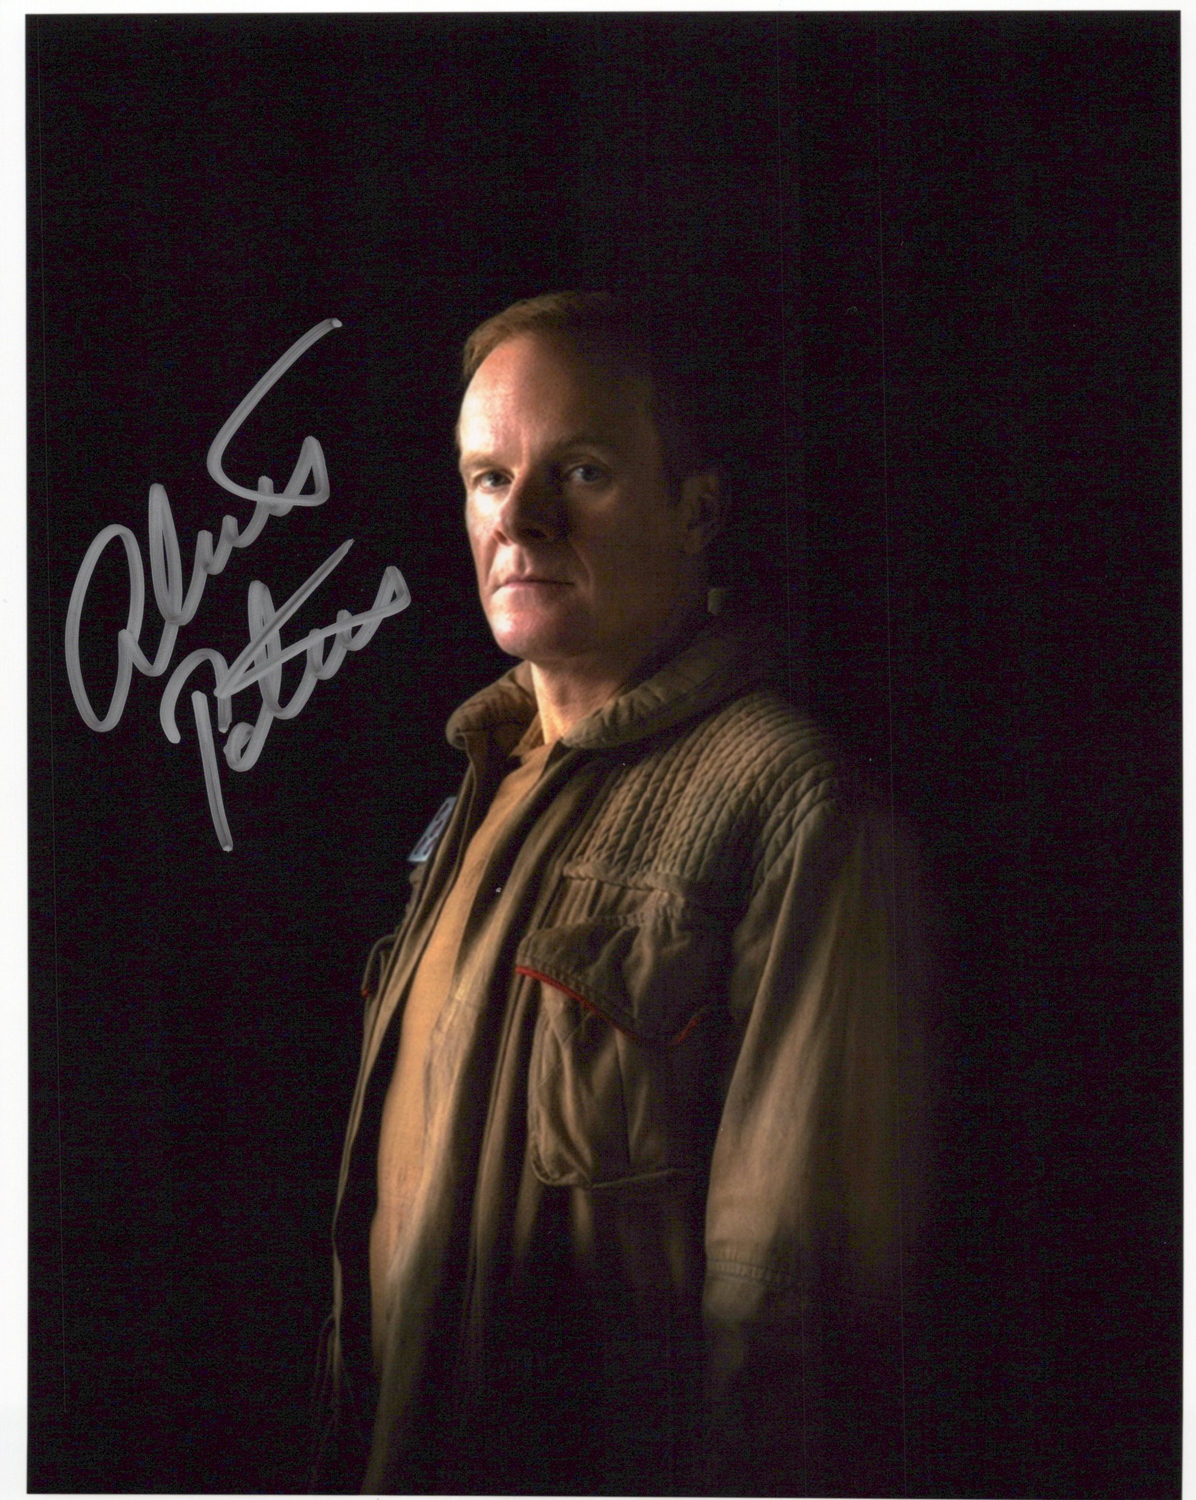 Alistair Petrie Original Autogramm auf Foto 20x25cm - Star Wars-Rogue One